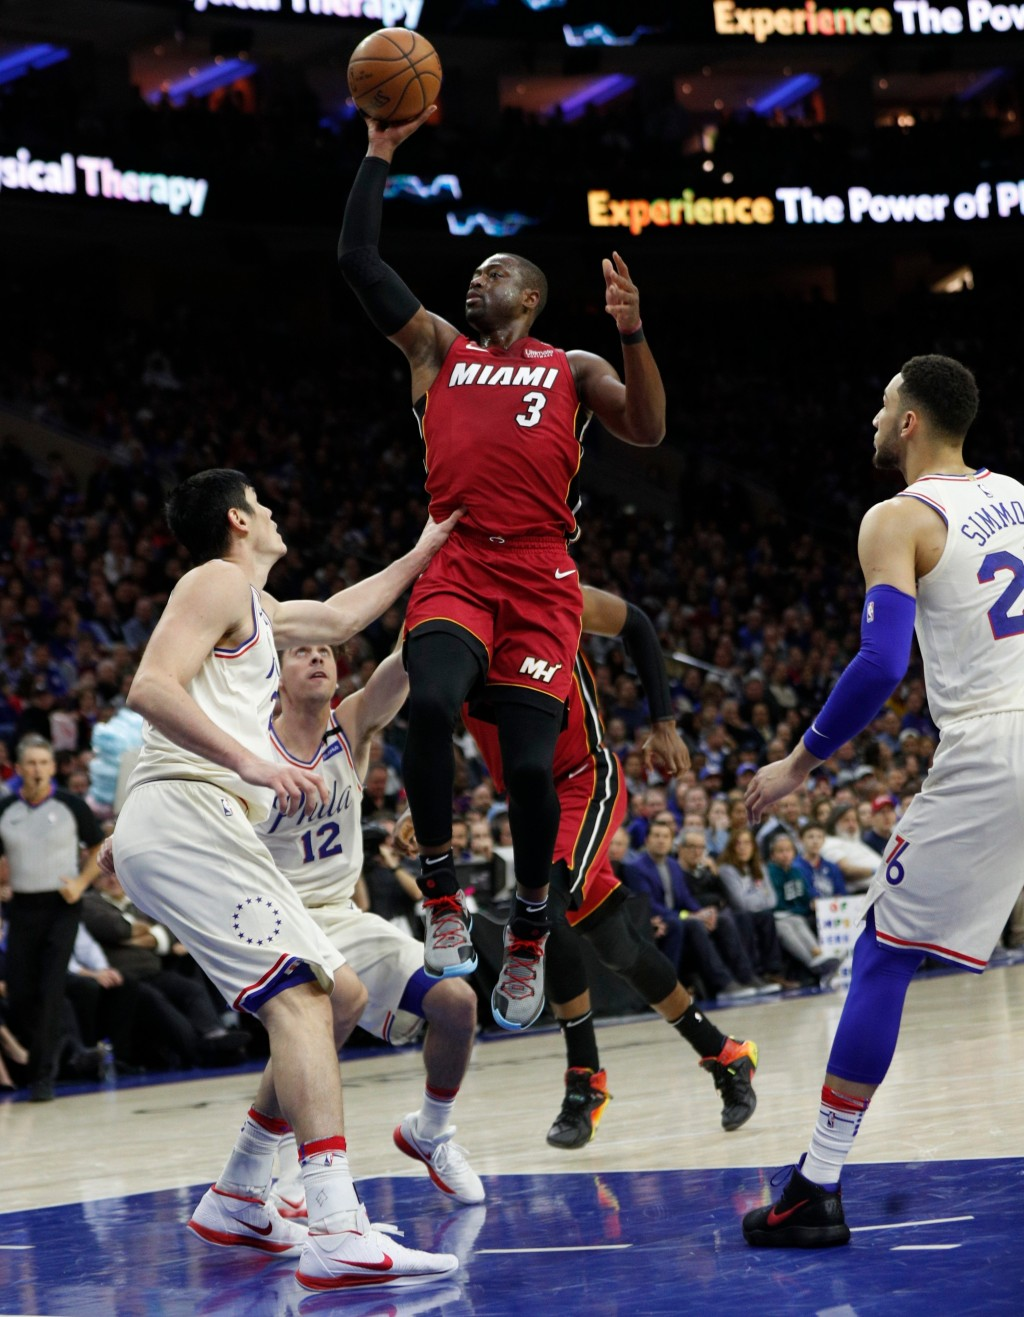 Miami Heat's Dwyane Wade, right, shoots with Philadelphia 76ers' T.J. McConnell, center, and Ersan Ilyasova, left, of Turkey, defend during the first